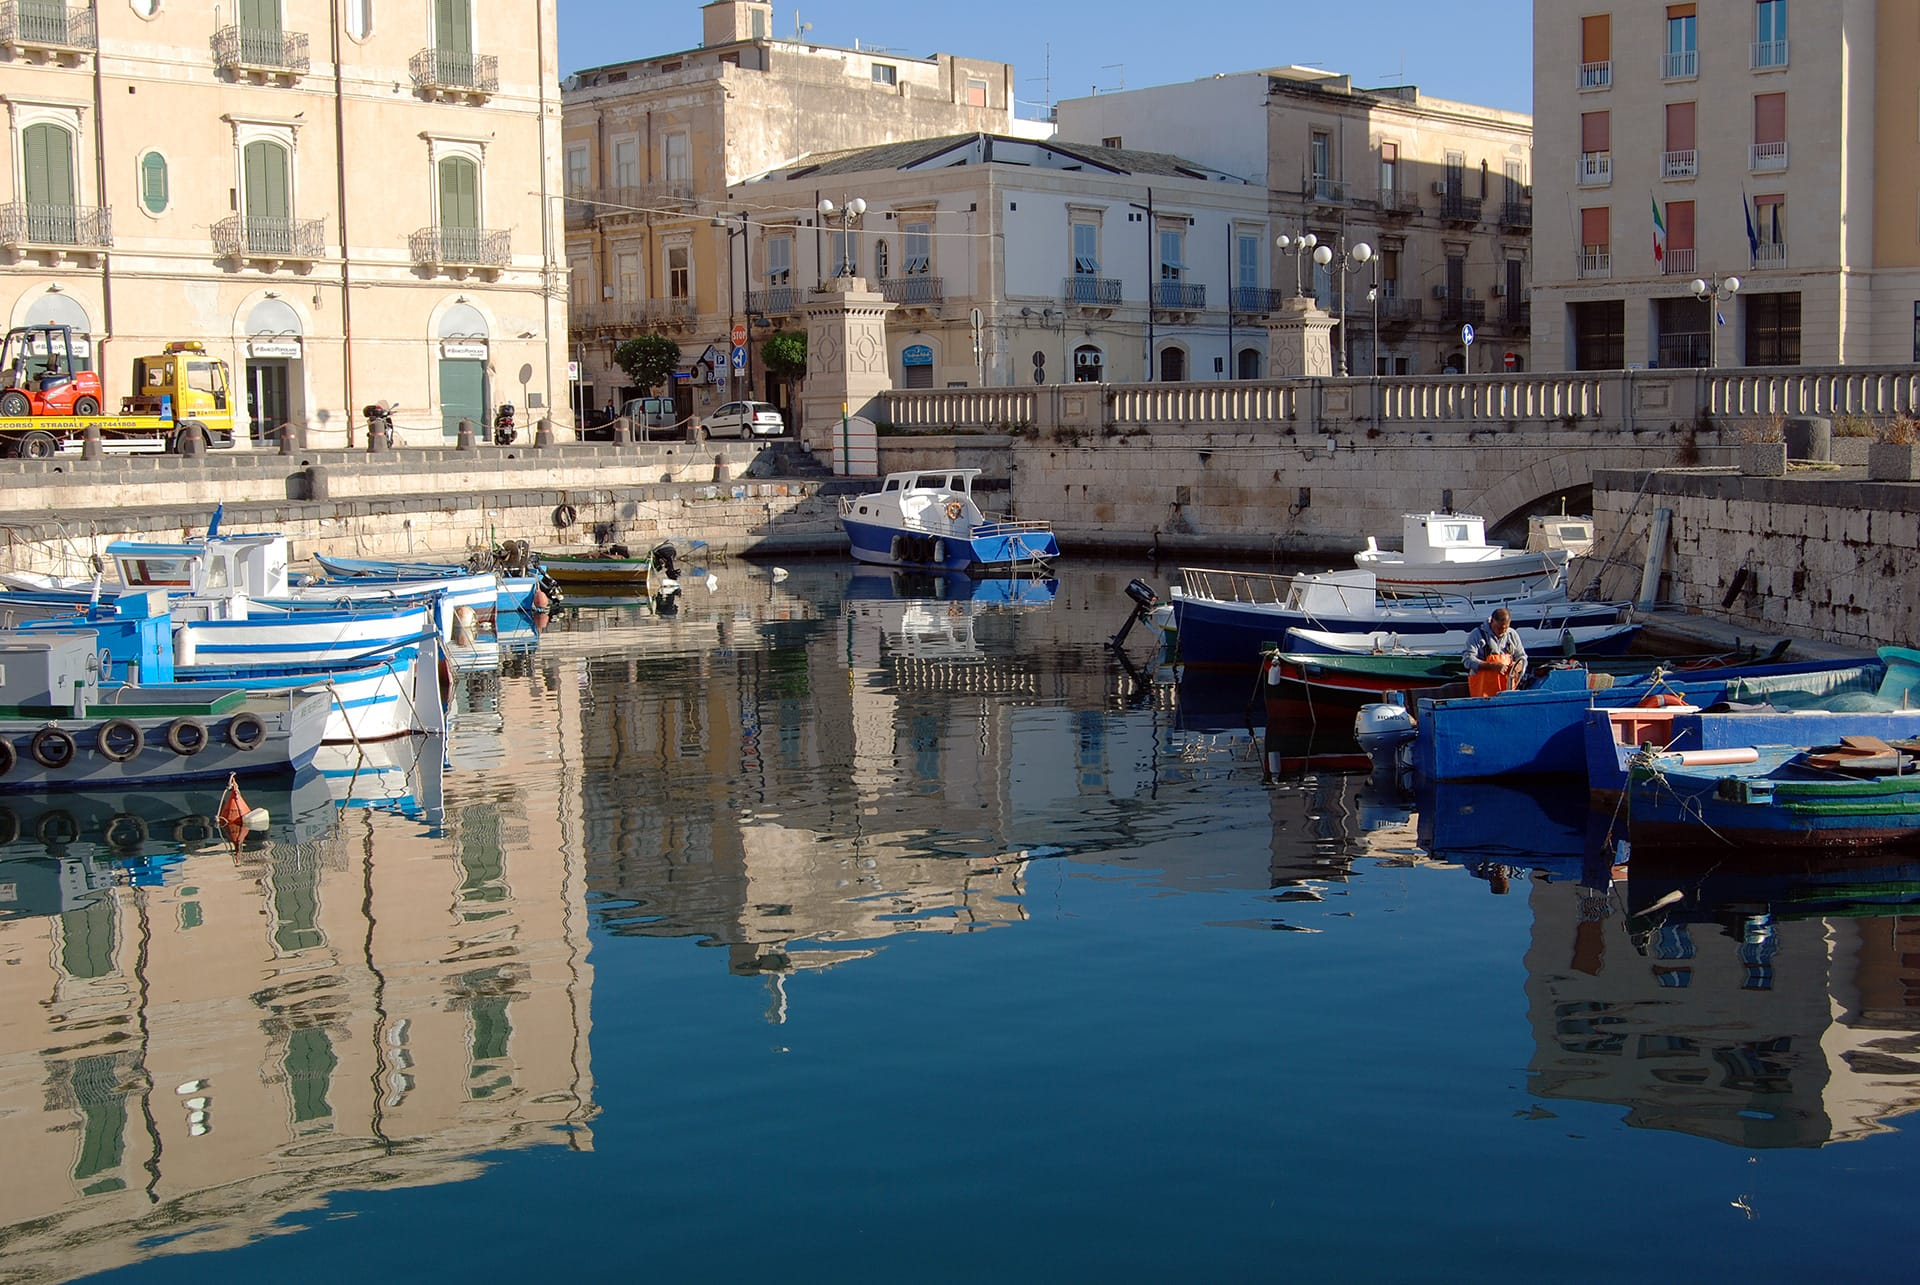 Syracuse sicily weather - Excursions sicily